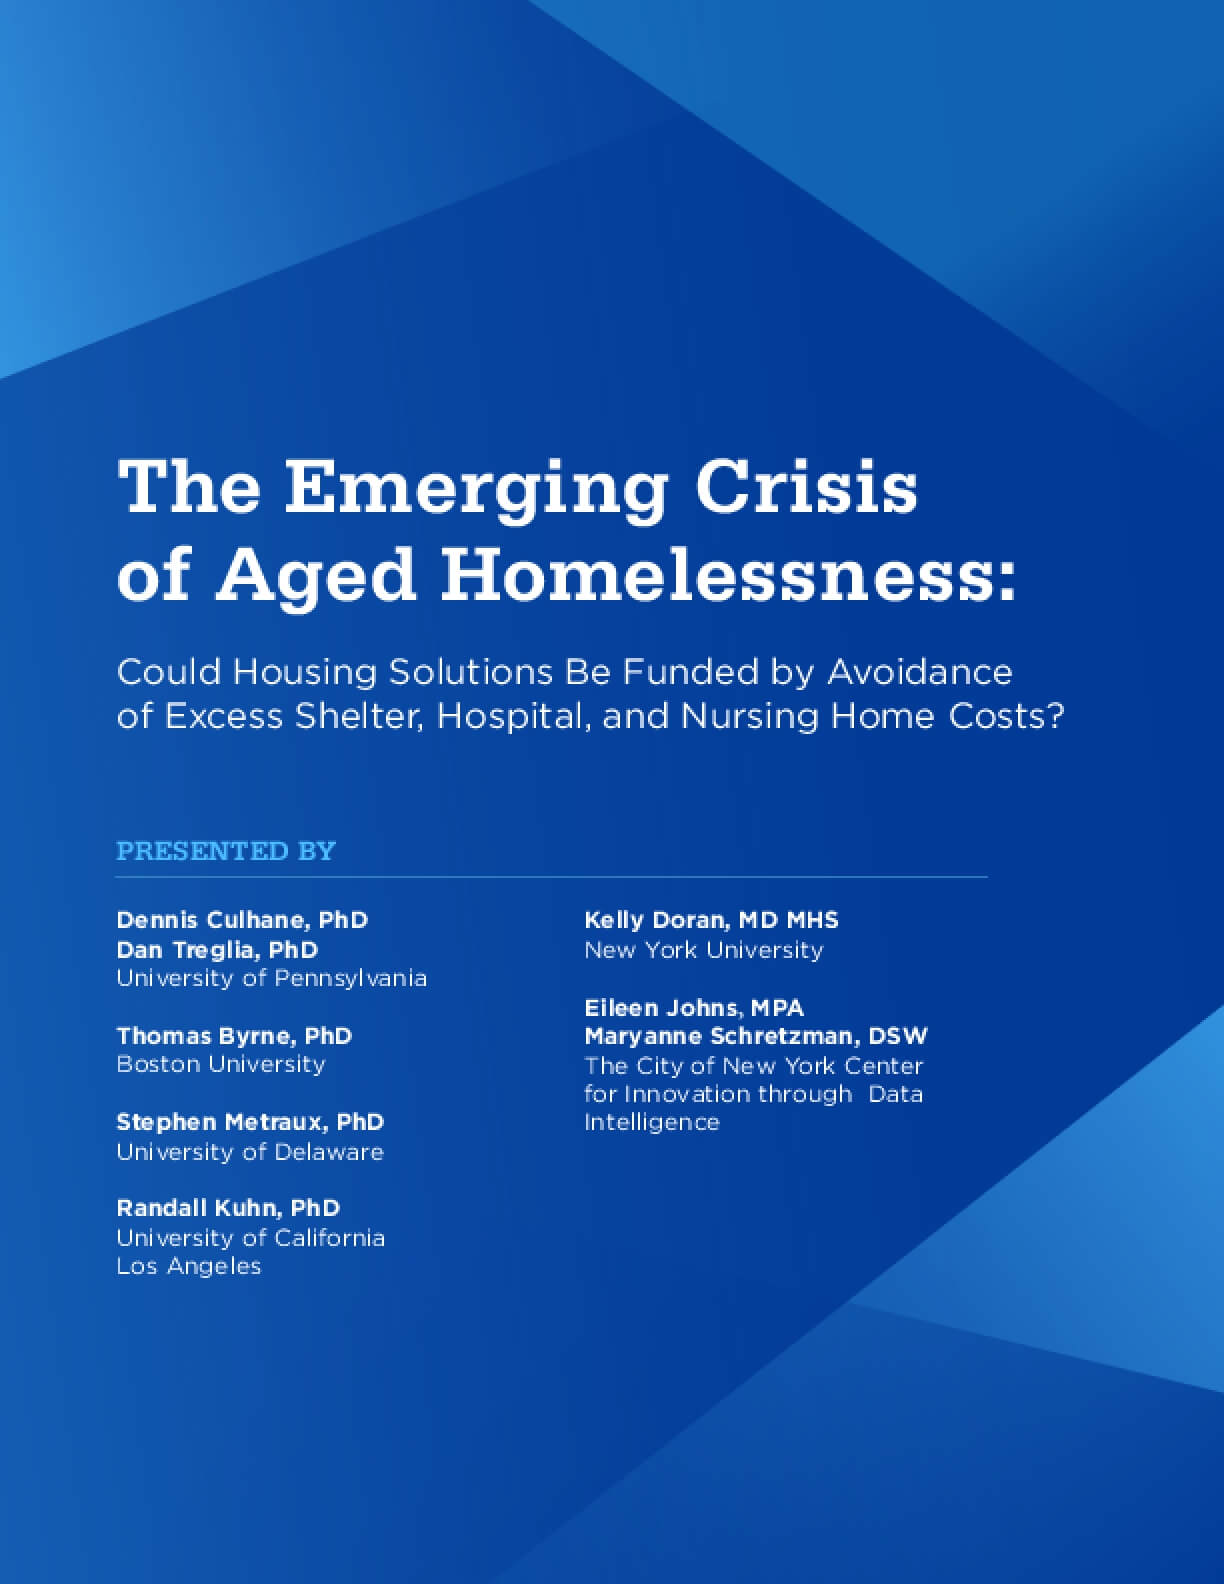 The Emerging Crisis of Aged Homelessness